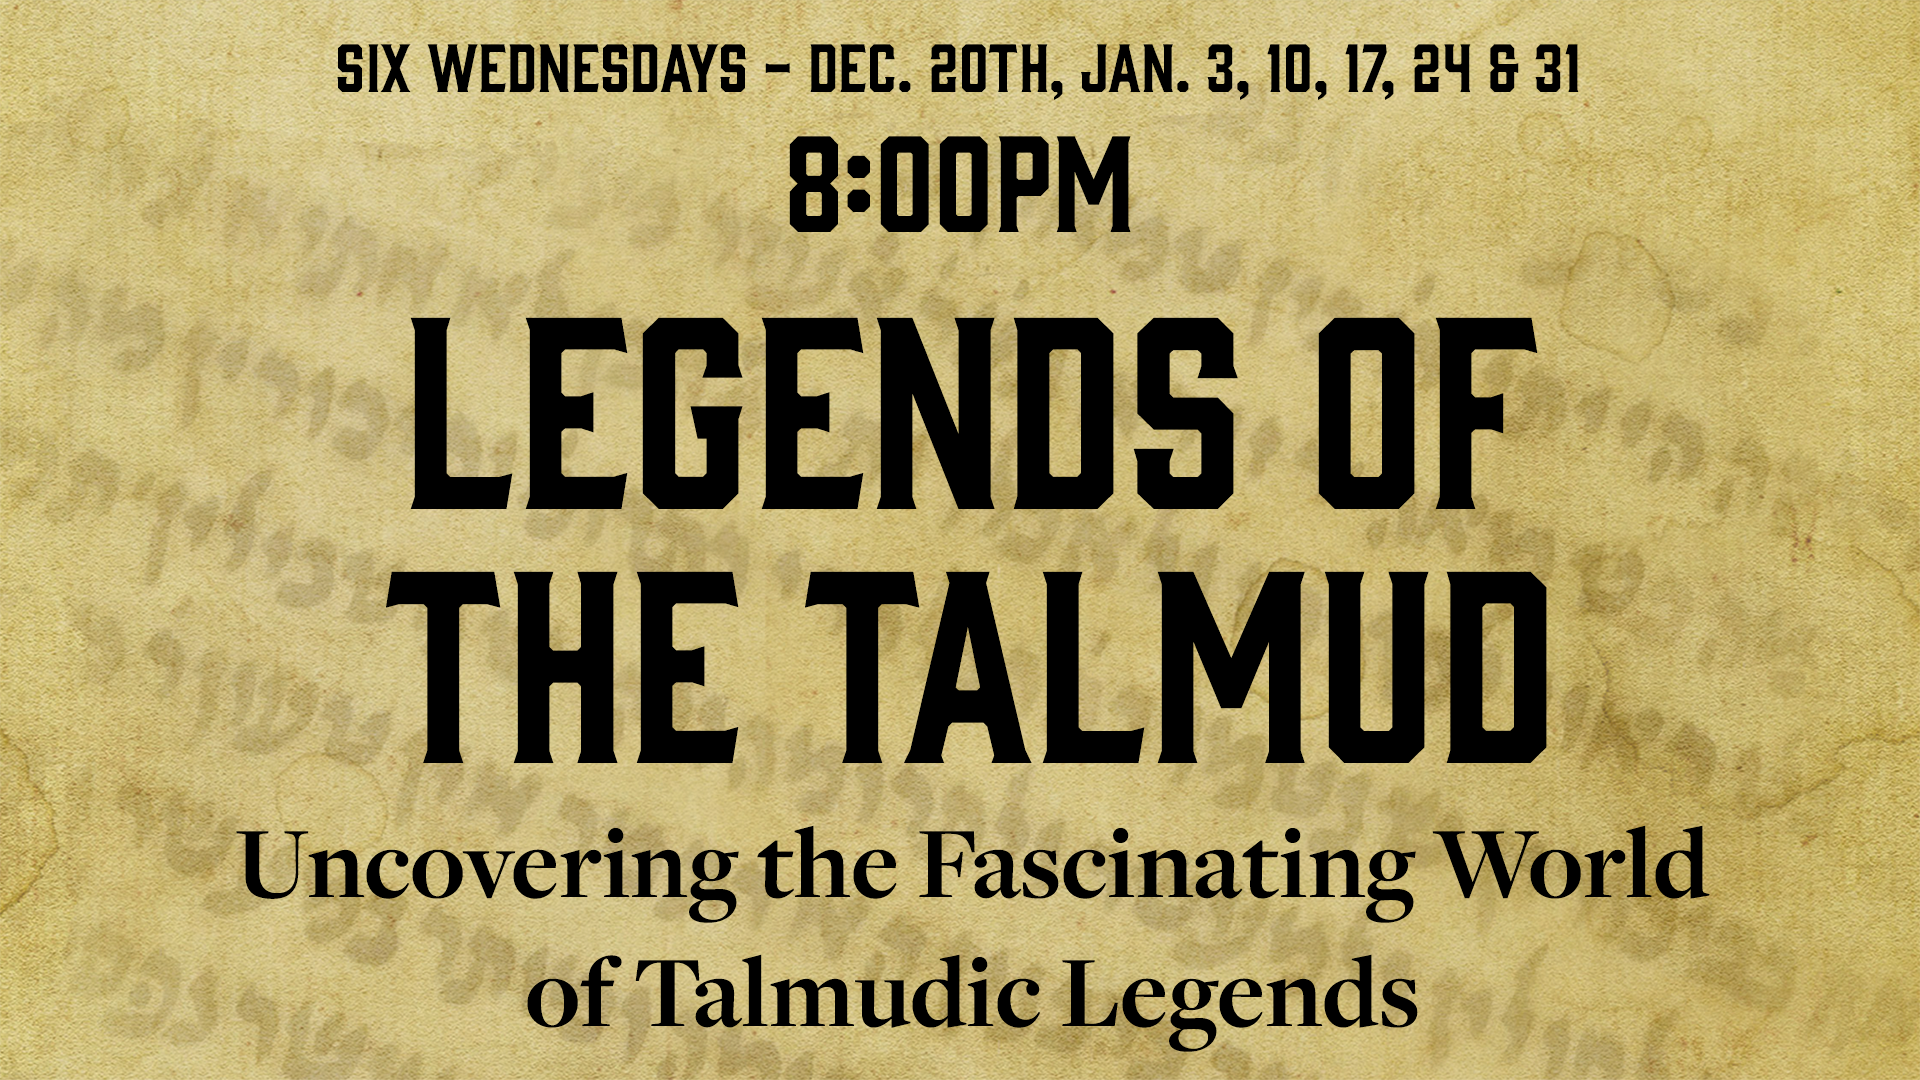 Legends of the Talmud